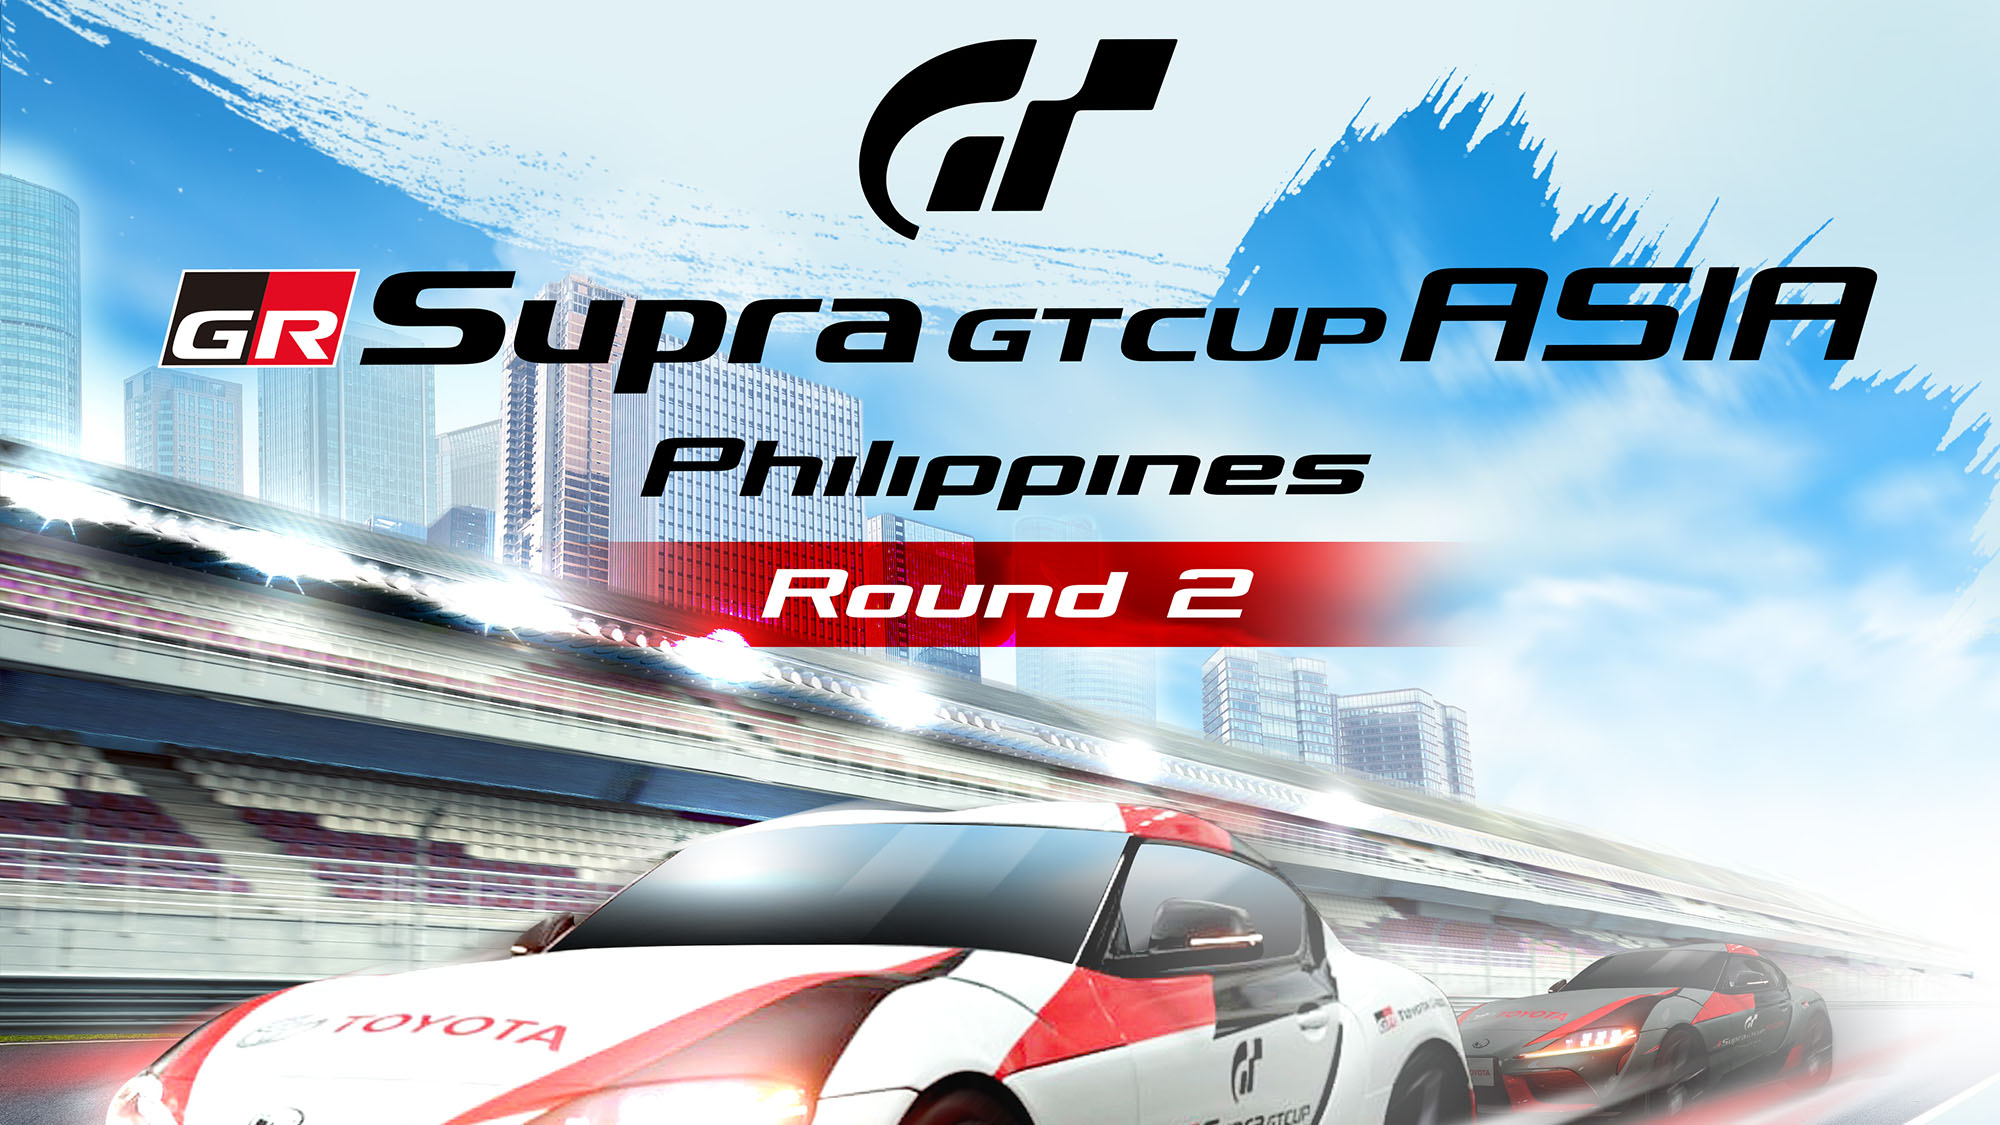 Second round of GR Supra GT Cup Asia Philippines sees old and new champions on the podium